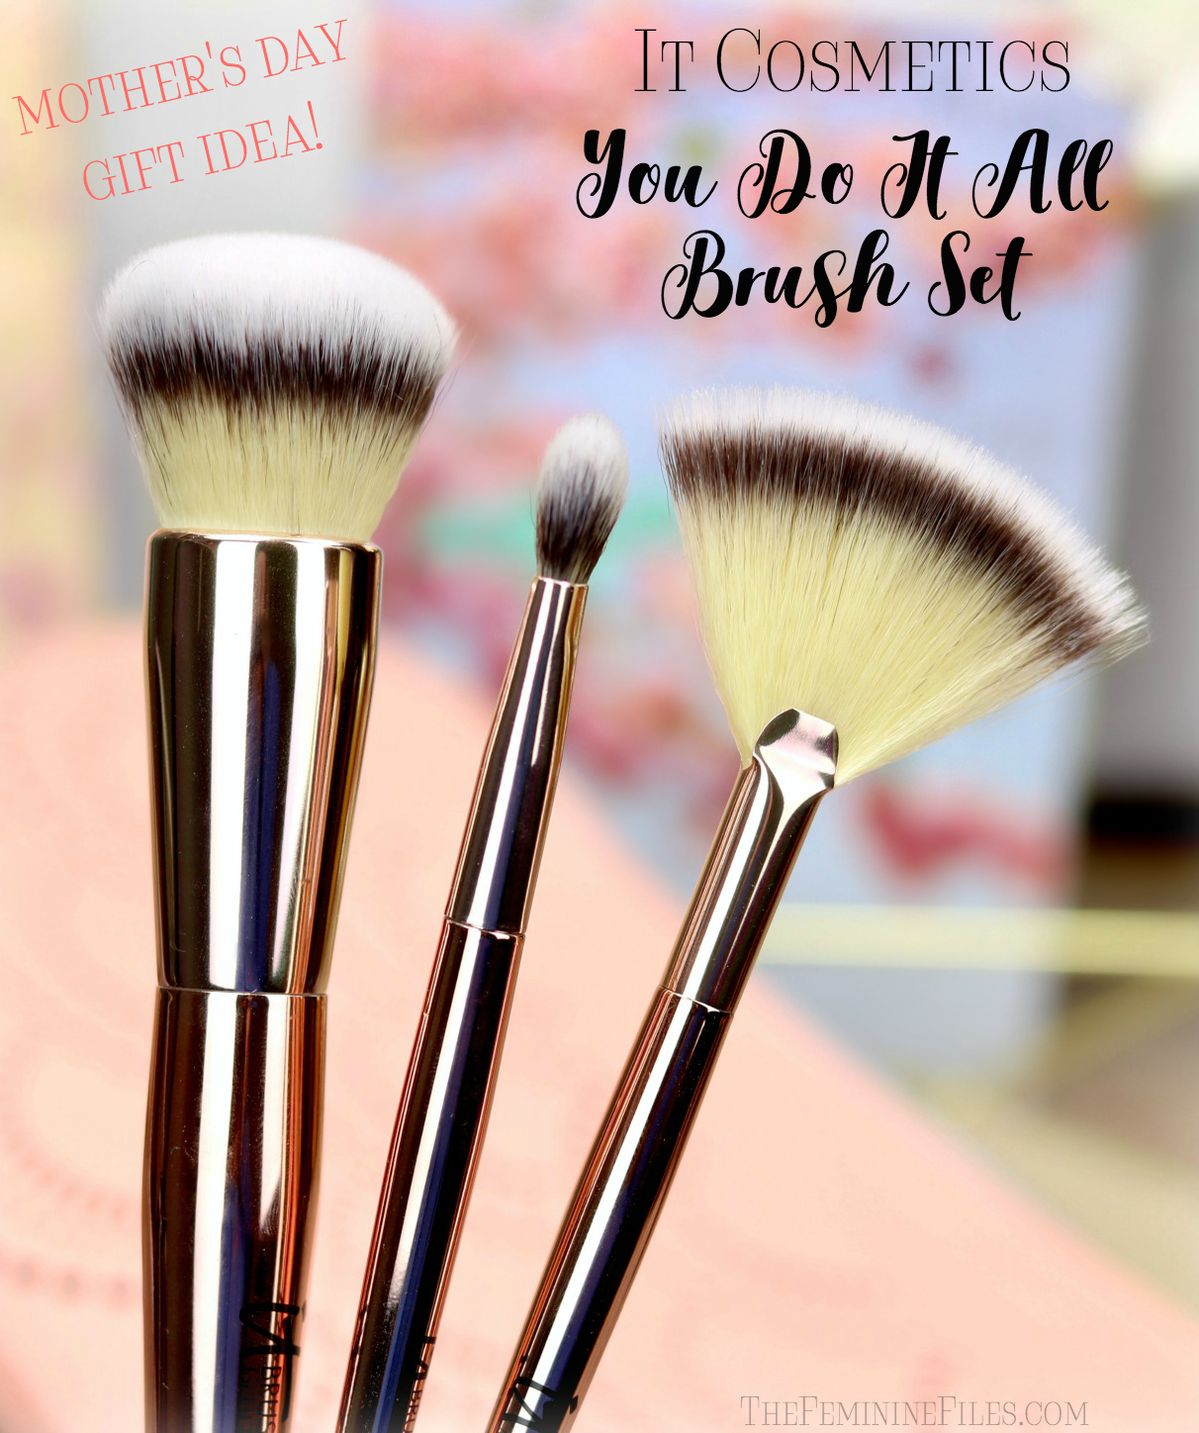 #ItCosmetics Mother's Day Gift Idea